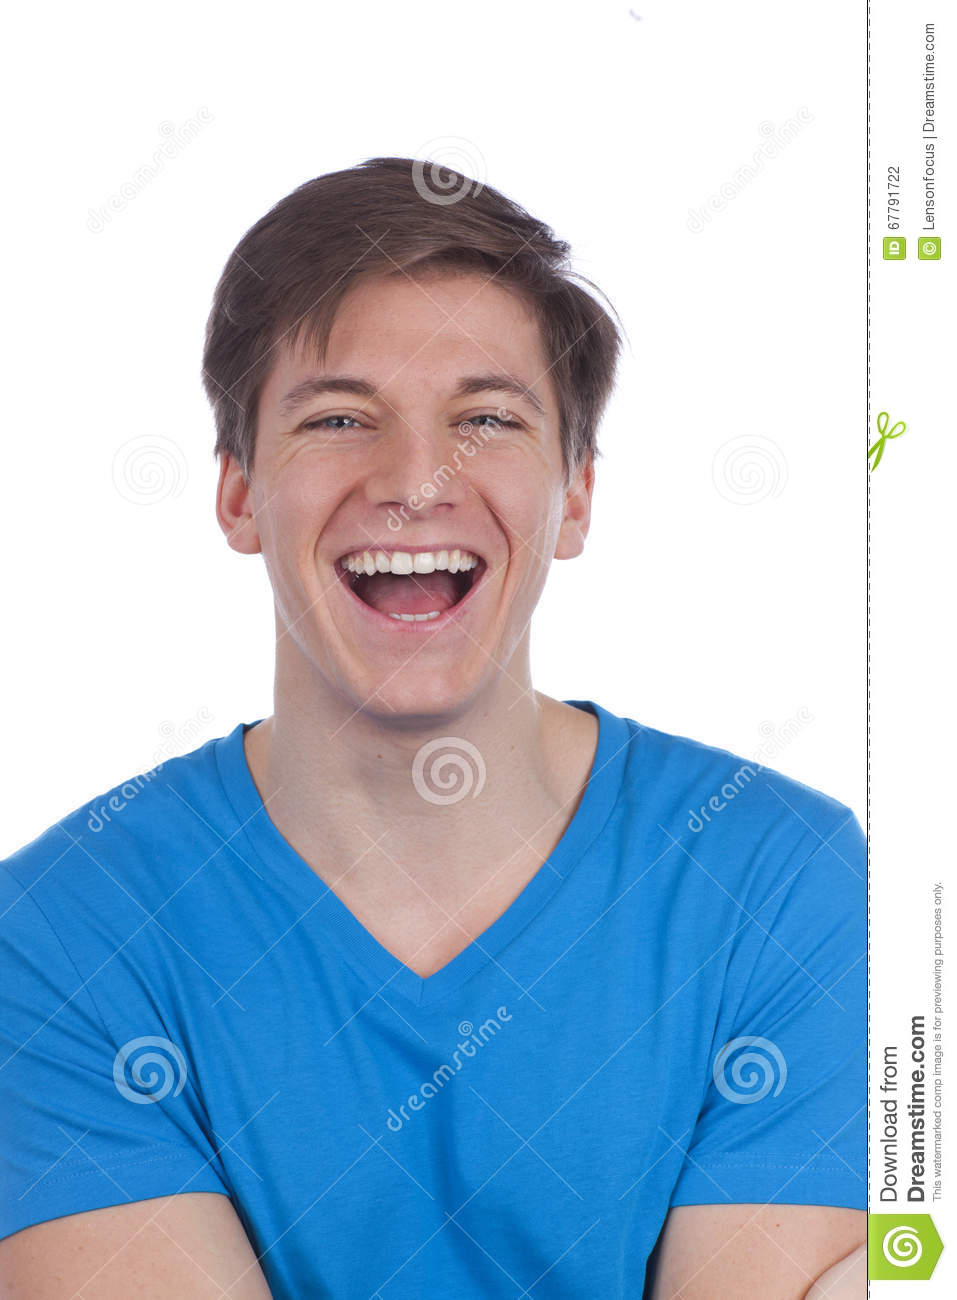 Attactive young man smiling